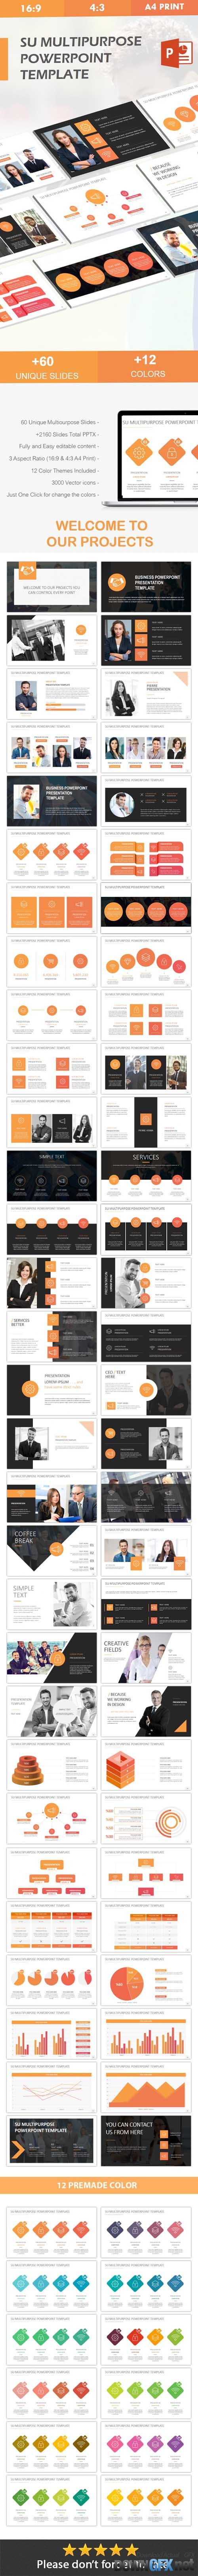 SU multipurpose Powerpoint Template 20146736